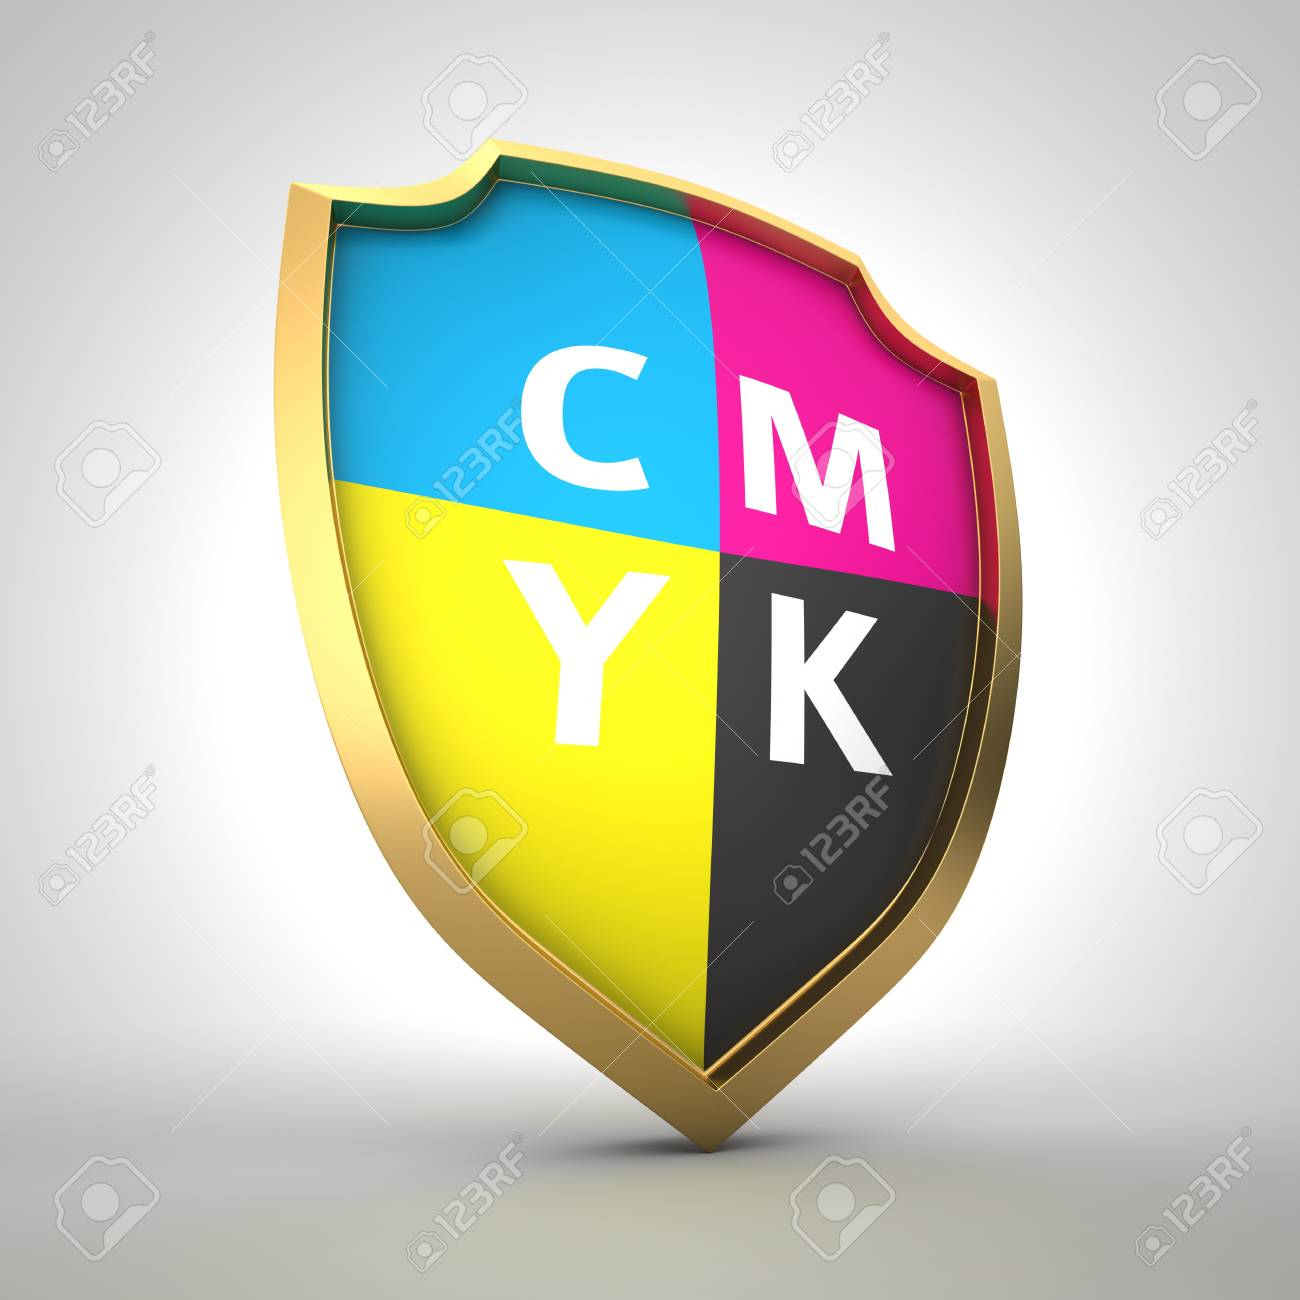 Shield painted with cmyk colors Stock Photo - 14381980